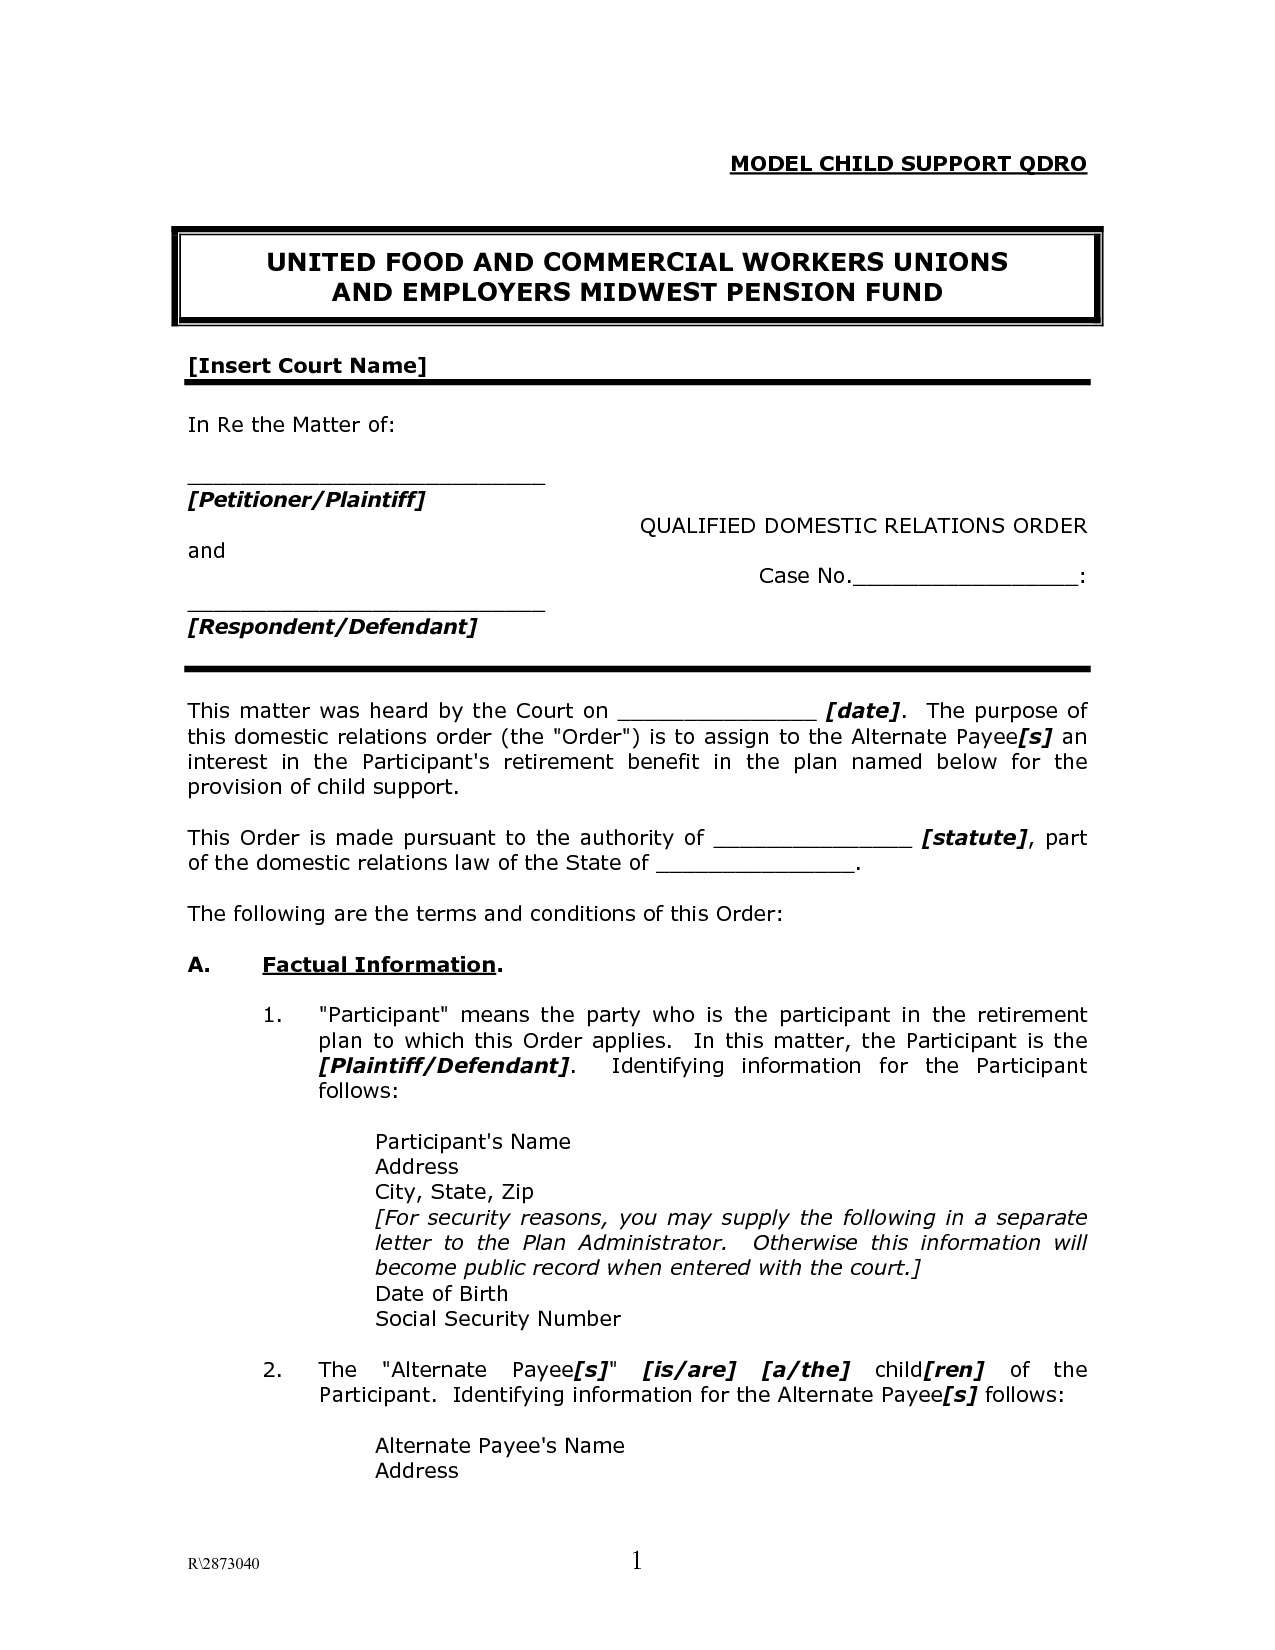 divorce agreement template canada - modern sample divorce agreement composition simple